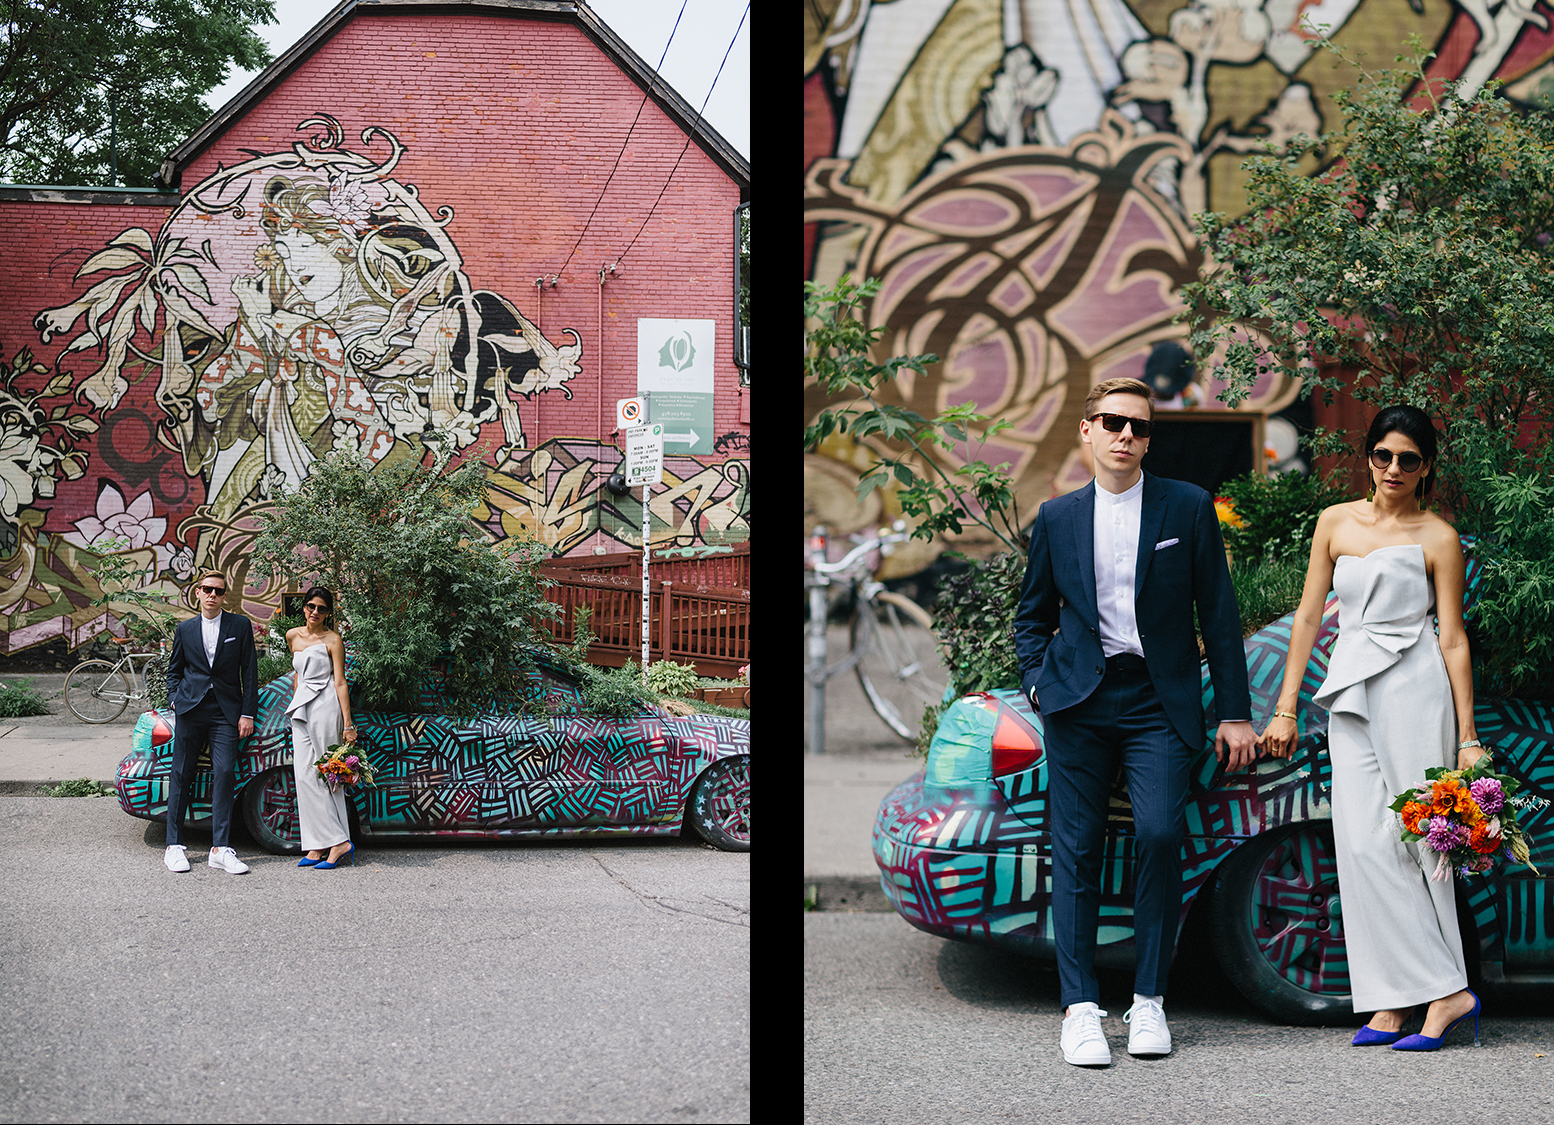 11-Intimate-Toronto-Pop-Up-Elopement-Downtown-Urban-Kensington-film-analog-photography-toronto-wedding-photographers-alternative-hipster-bride-and-groom-badass-candid-photos-with-garden-car-badass-cool-raybands.jpg